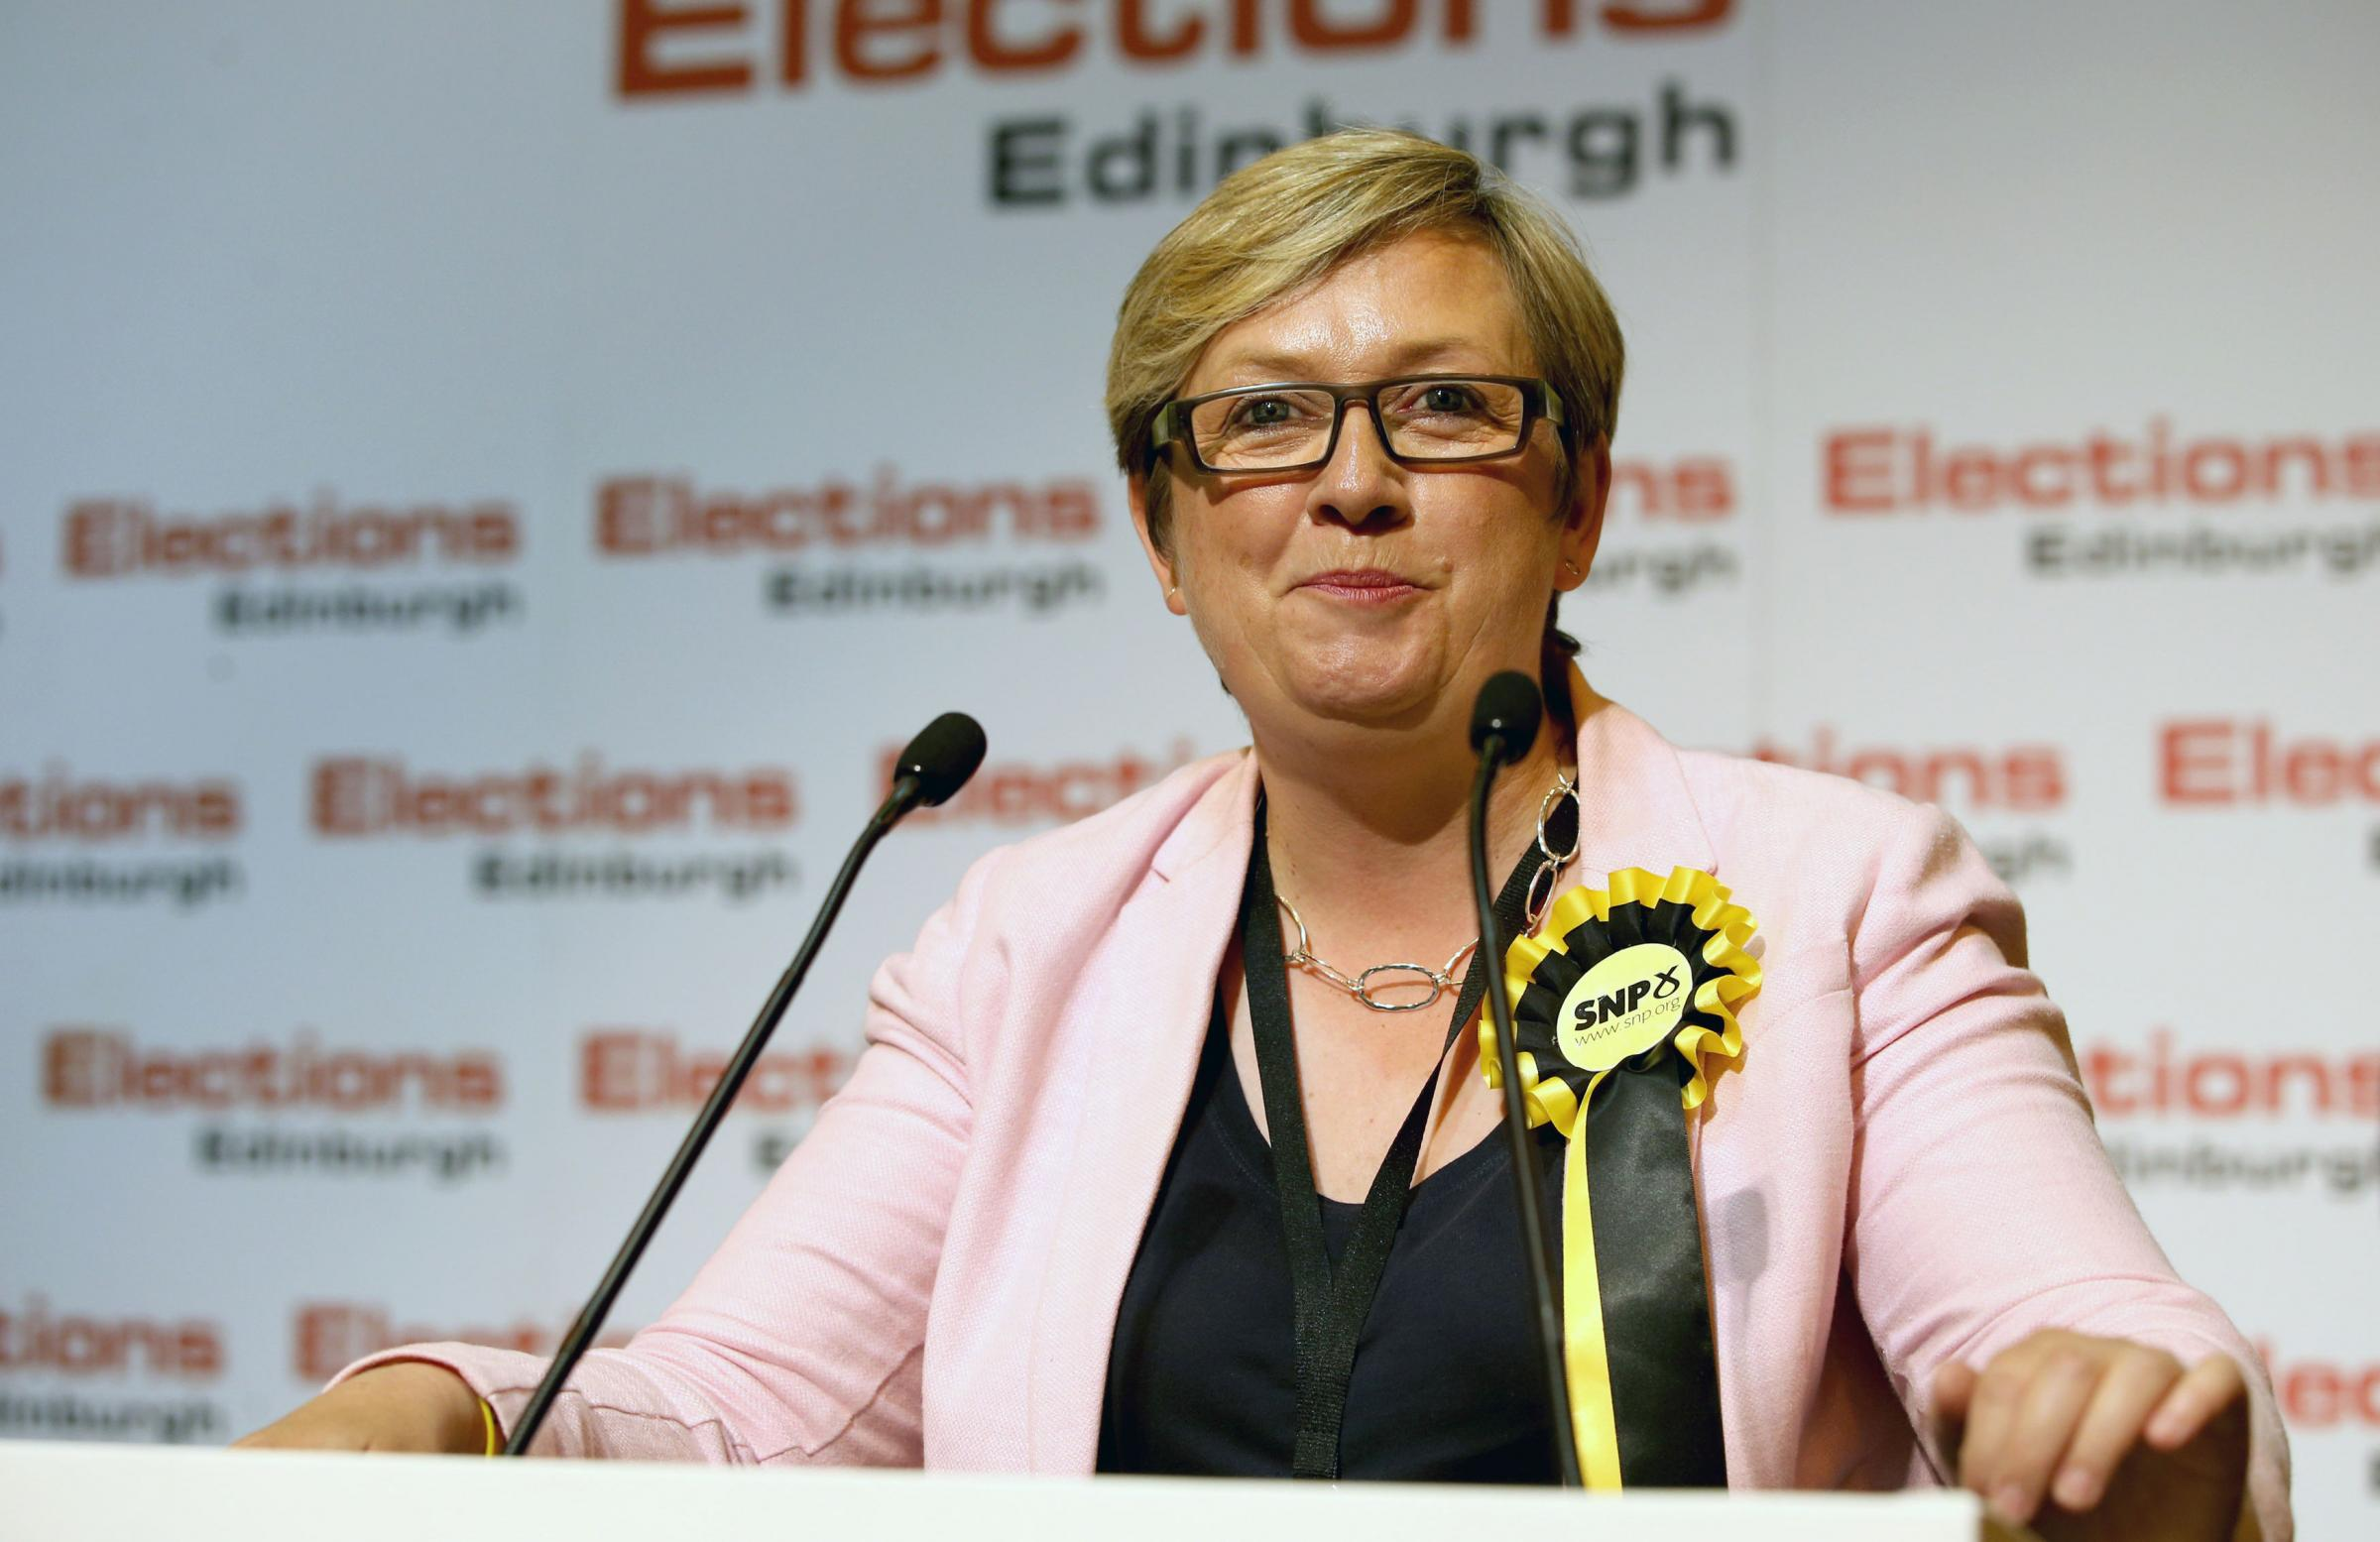 SNP MP Joanna Cherry compared the week at Westminister to 'the last days of rome'